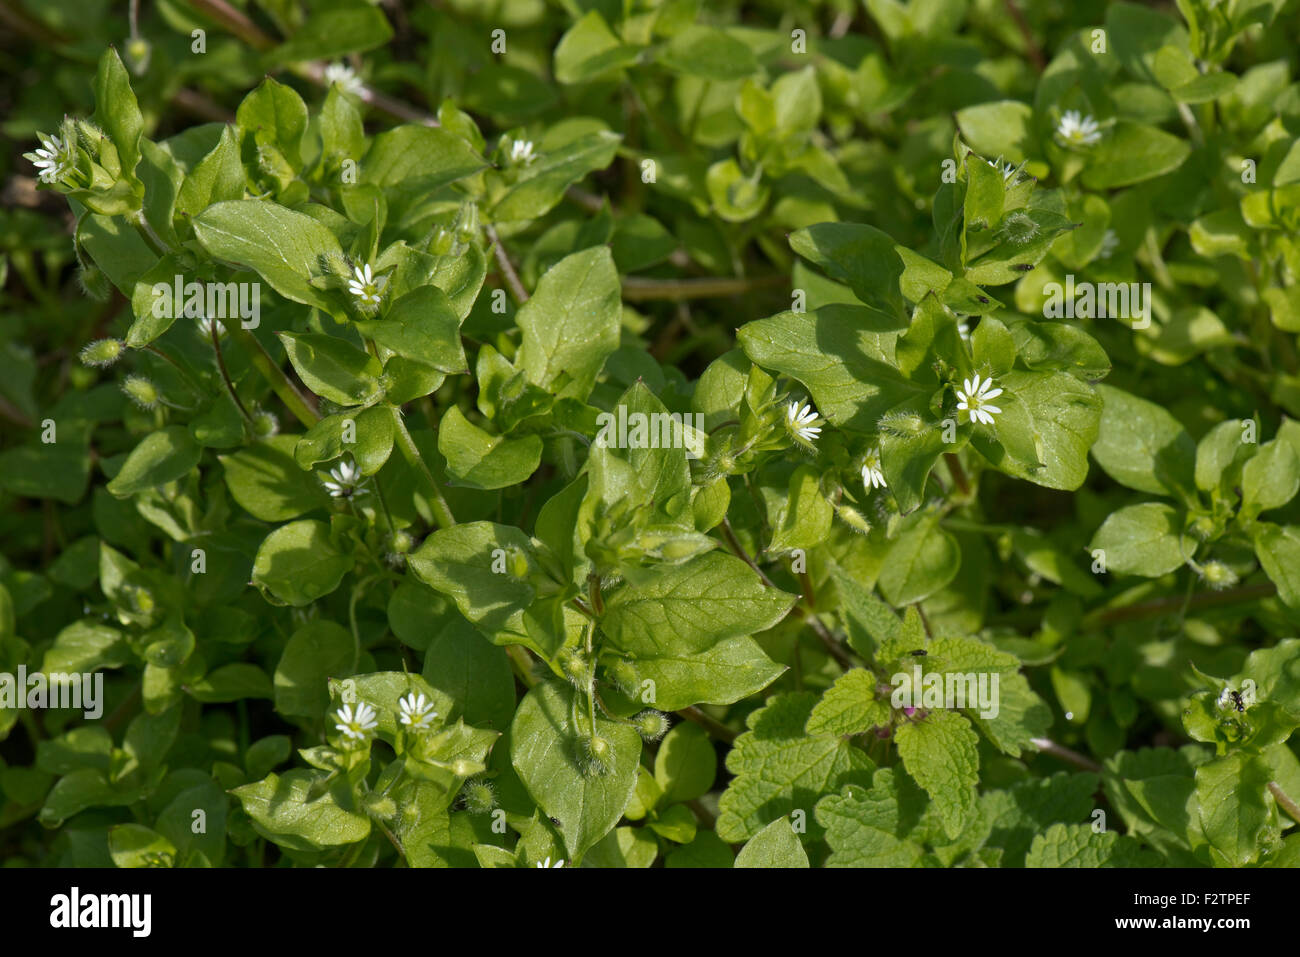 Chickweed Stellaria Media Small White Flowers And Green Leaves Of